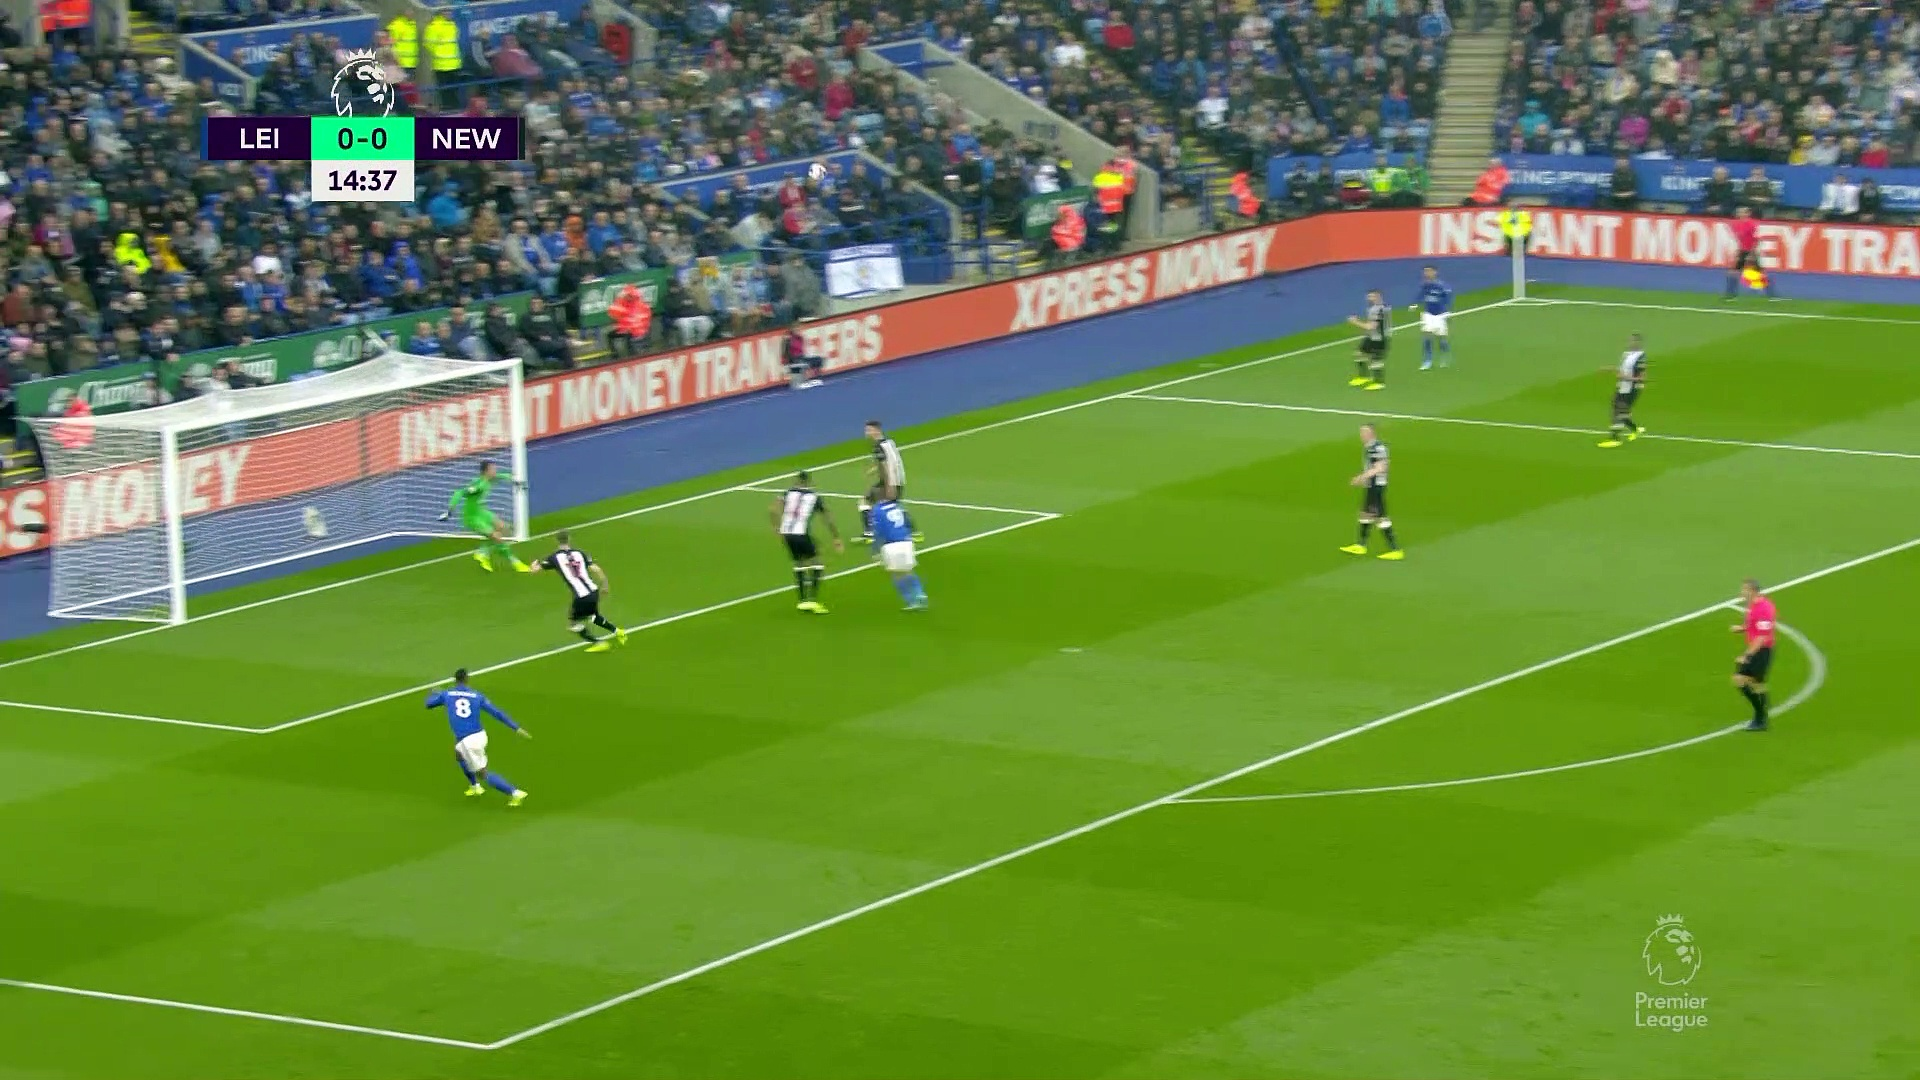 7. Hafta / Leicester City - Newcastle United: 5-0 (Özet)